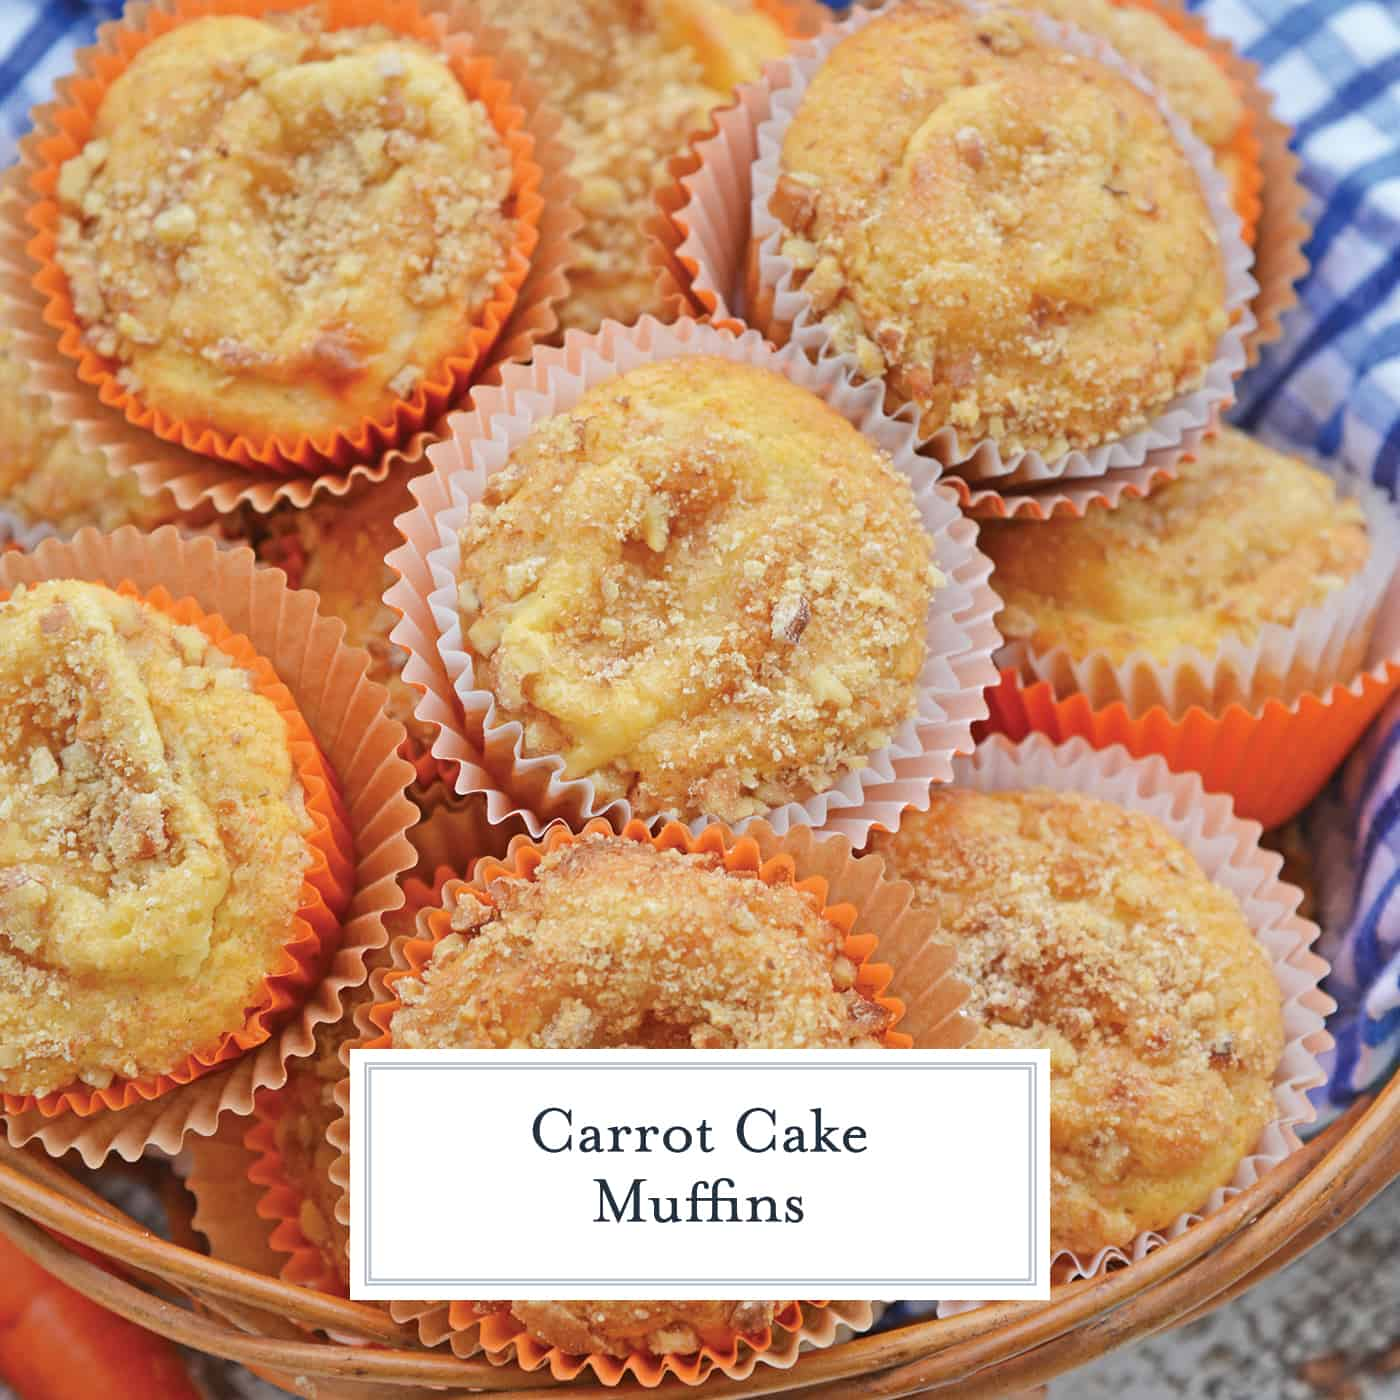 Carrot Cake Muffins are muffins loaded with carrots and stuffed with cream cheese frosting. Perfect for breakfast, brunch or a snack. Also freezer-friendly!  #carrotcakemuffins www.savoryexperiments.com